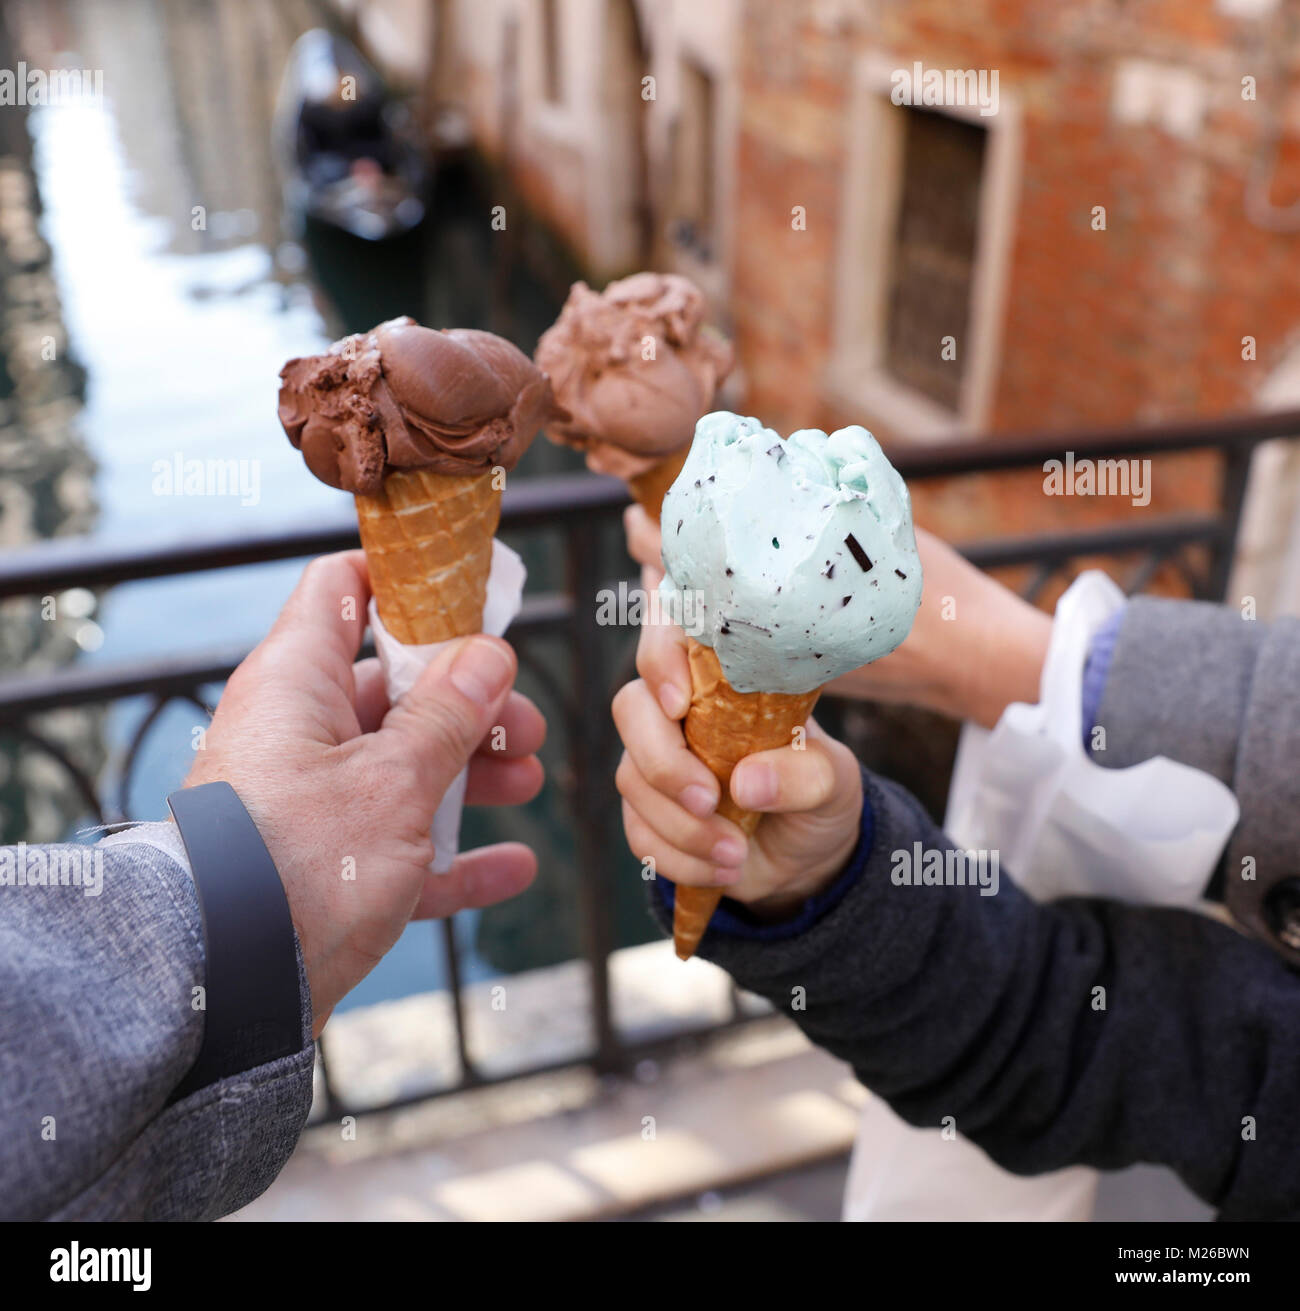 A family holds a variety of Italian Gelato next to a canal in Venice, Italy. (Photo by Matt May/Alamy) - Stock Image